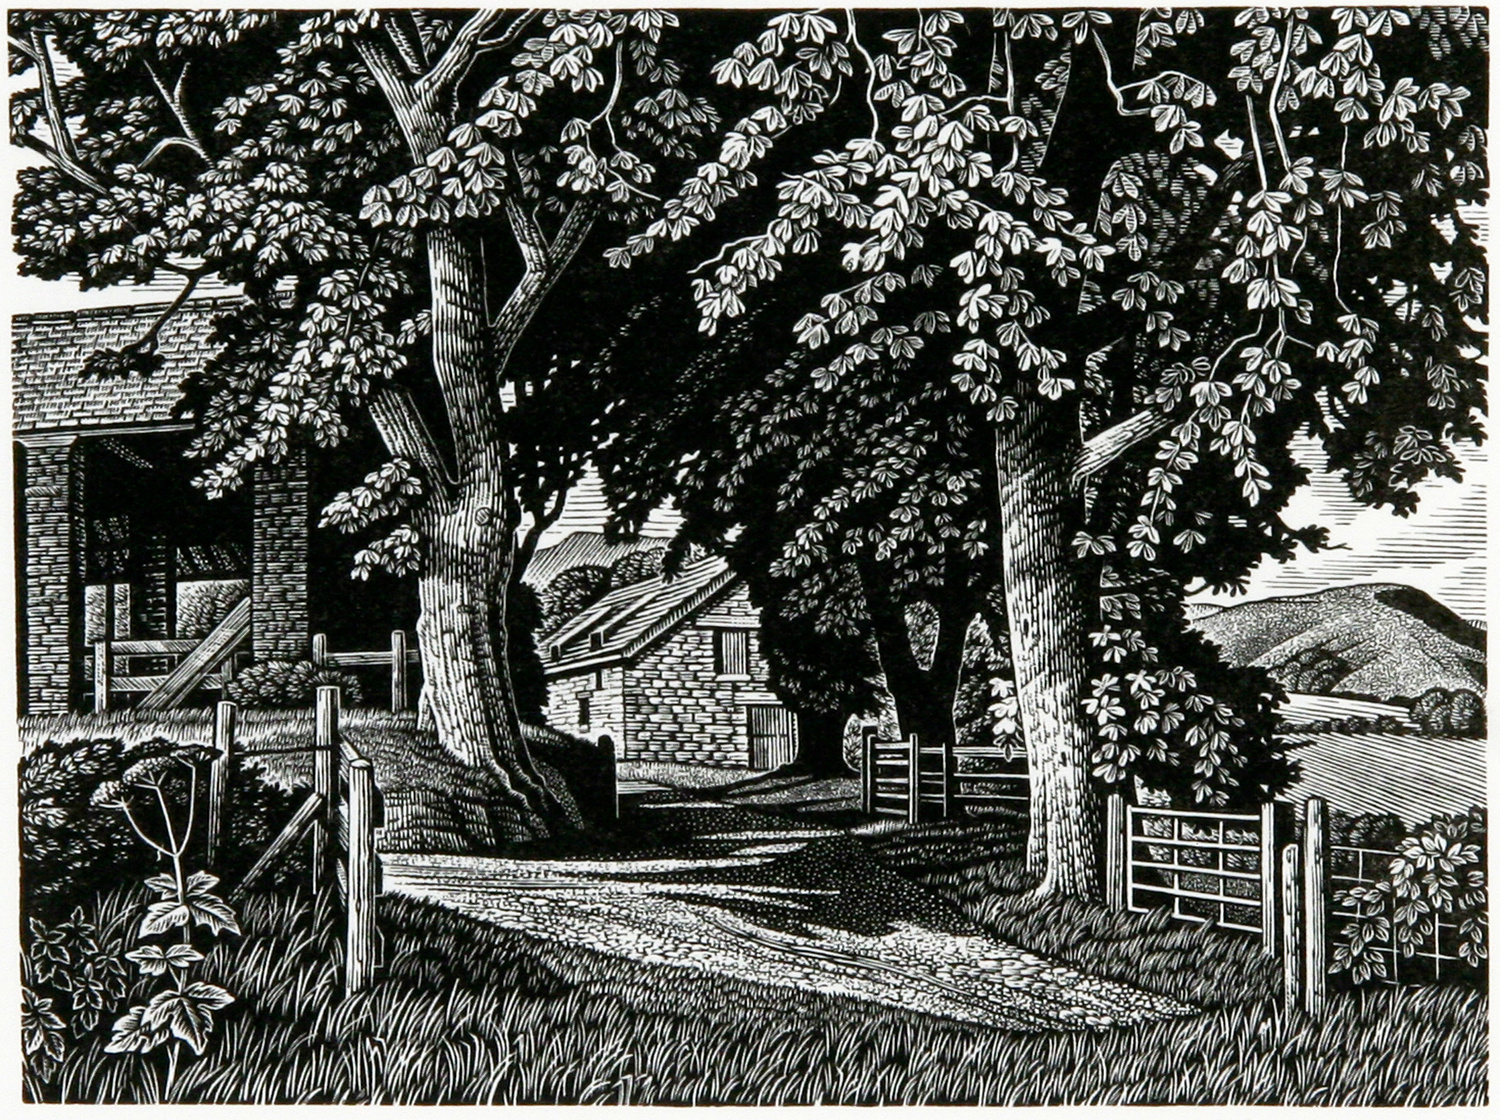 Hill Farm by Howard Phipps